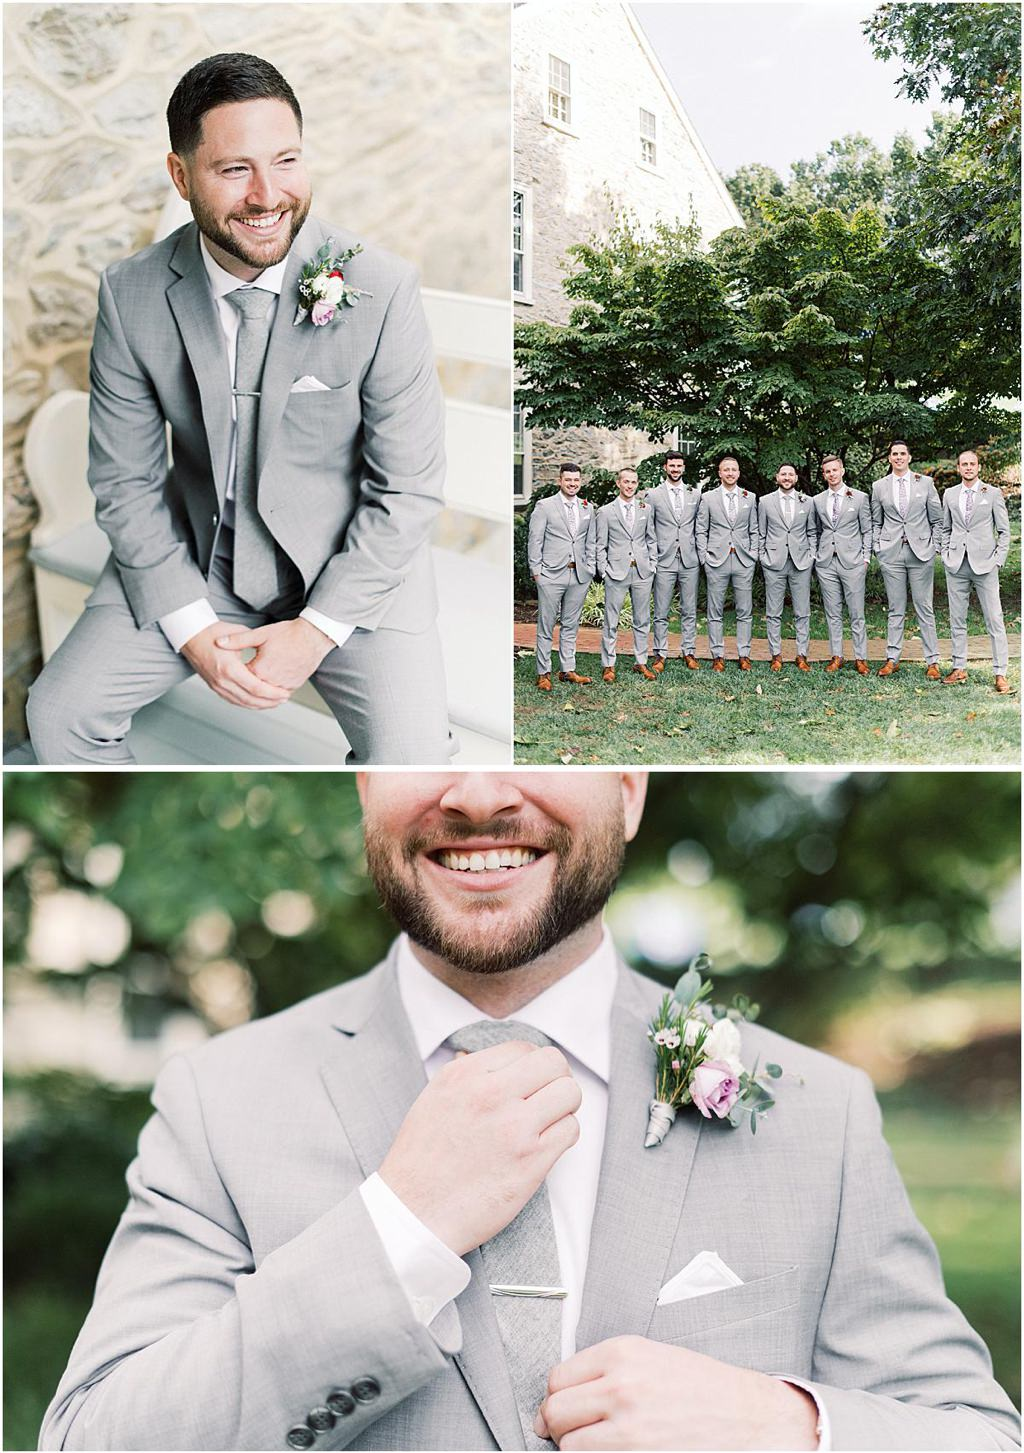 A groom and groomsmen posing for wedding photos